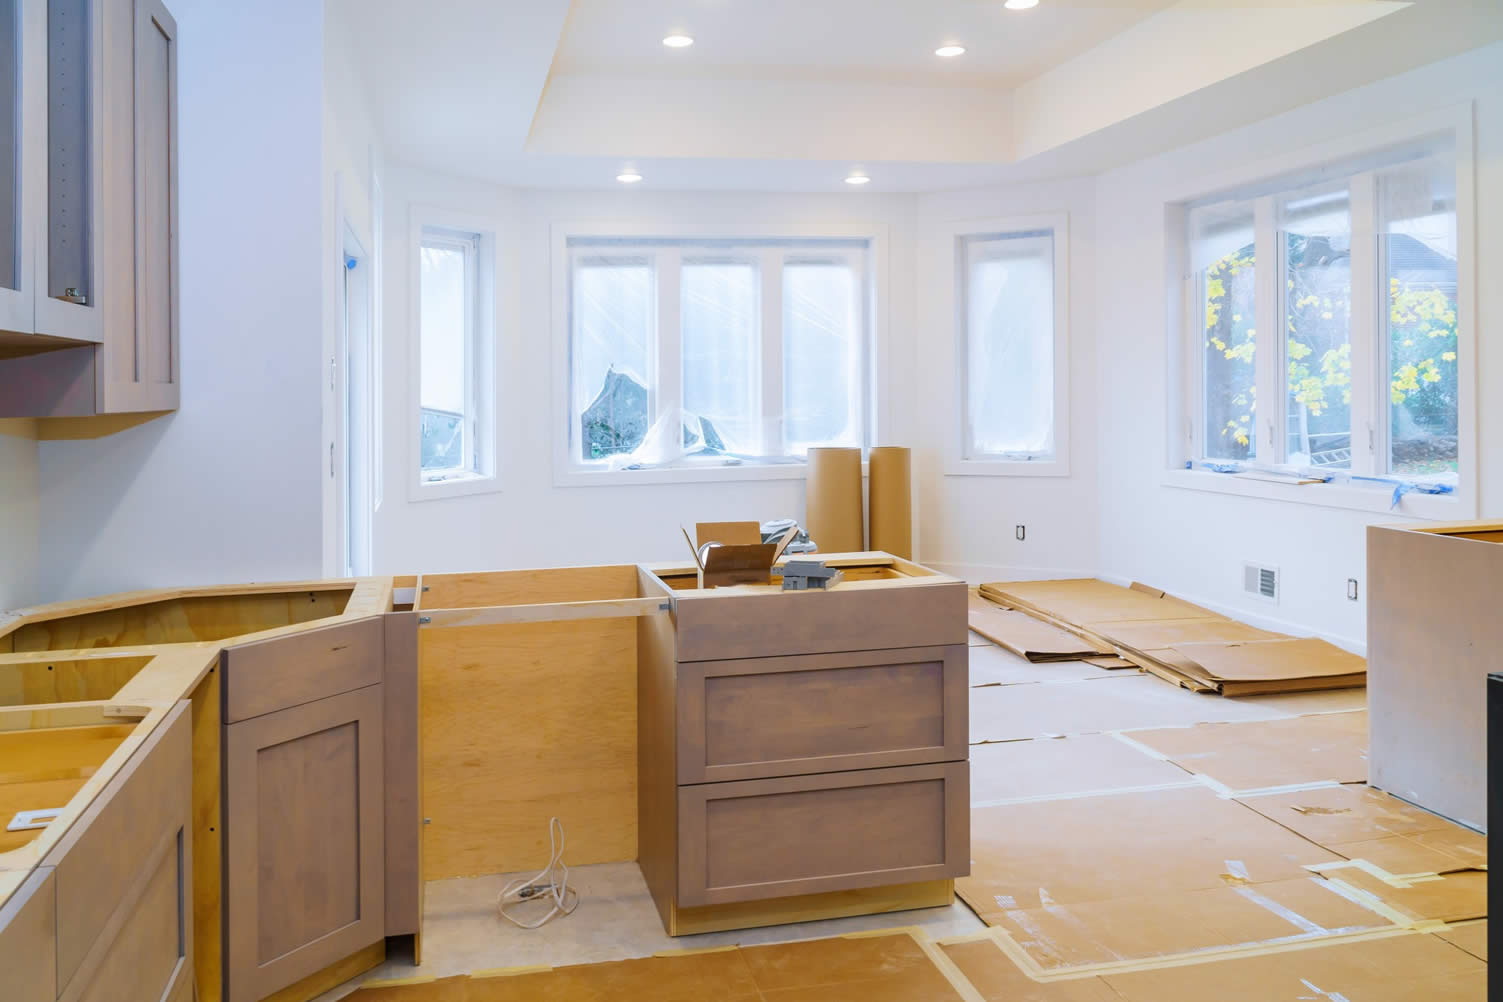 repaint or replace your kitchen cabinets